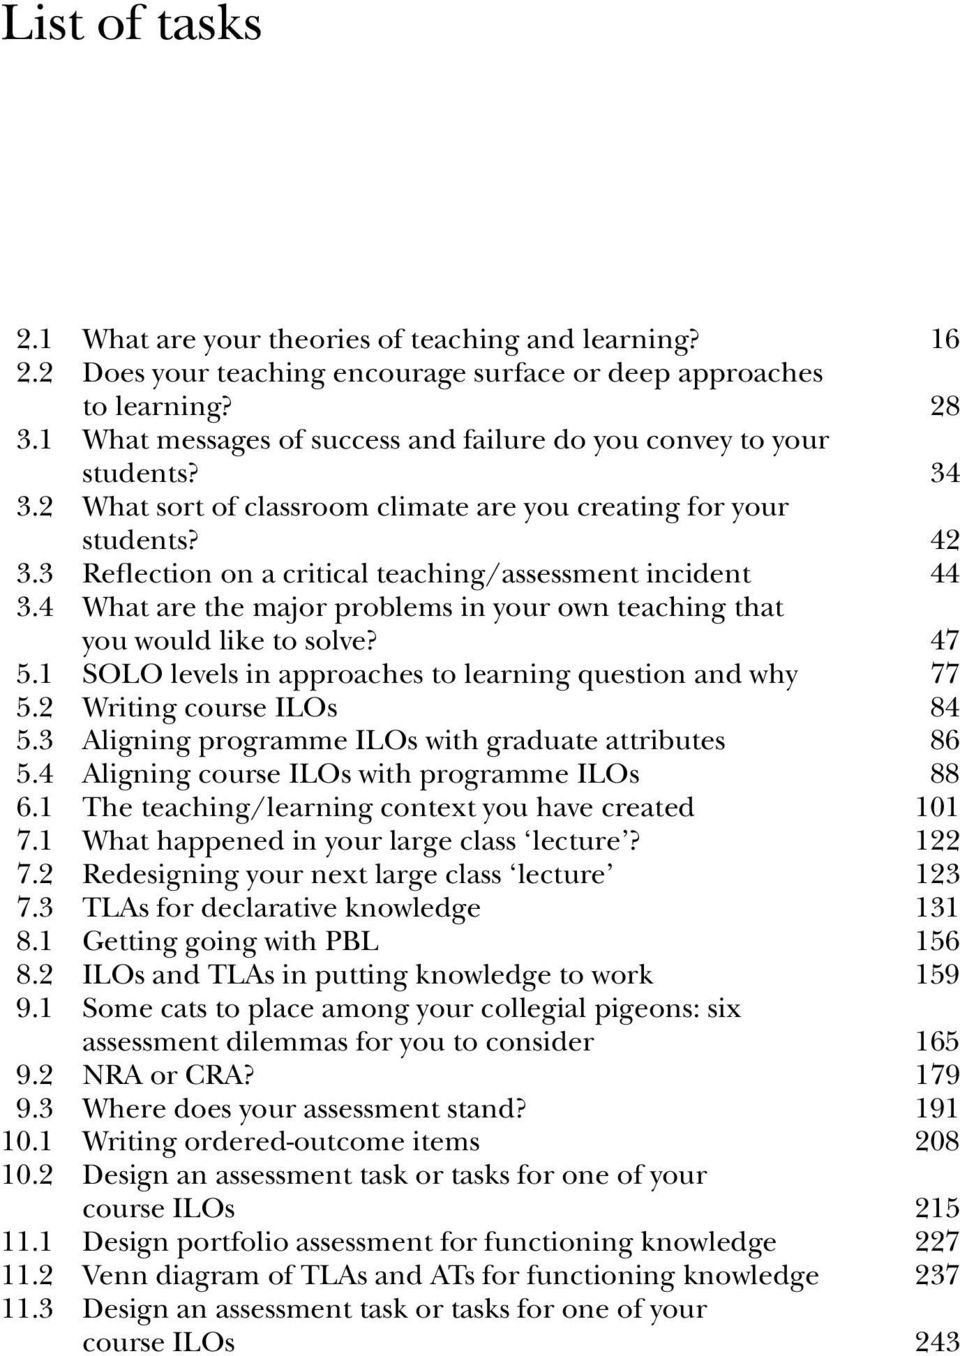 3 Reflection on a critical teaching/assessment incident 44 3.4 What are the major problems in your own teaching that you would like to solve? 47 5.